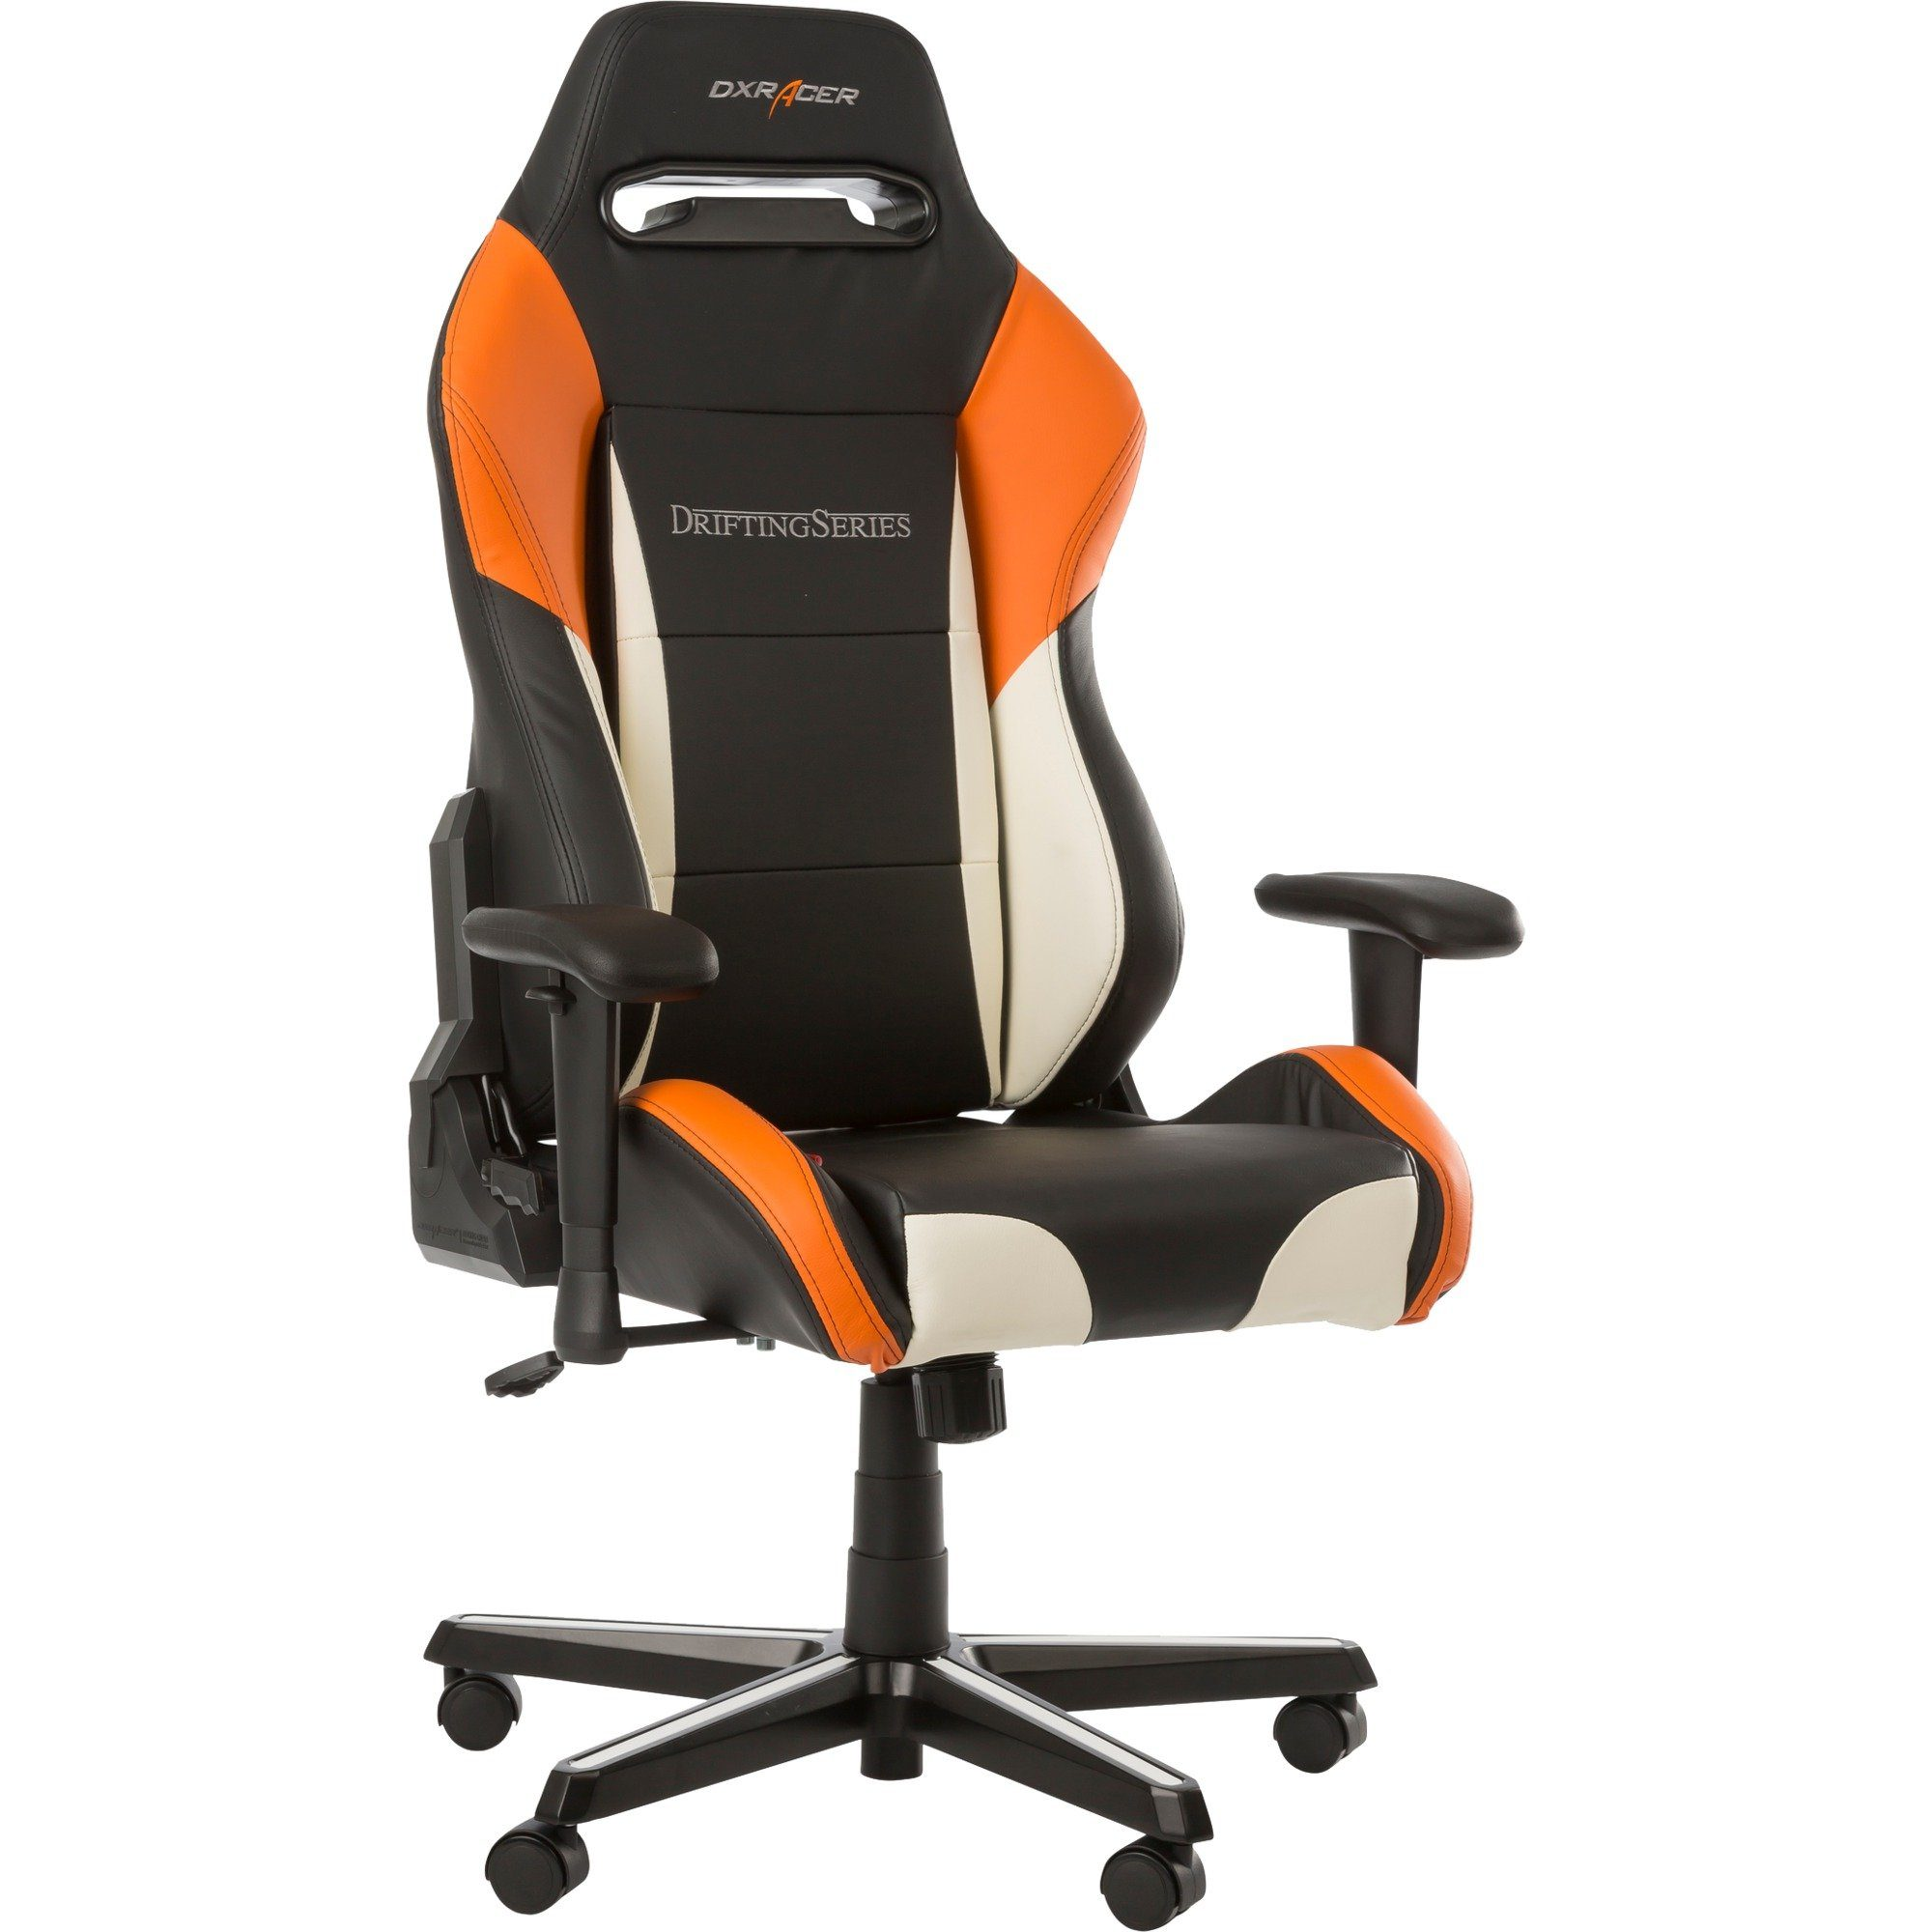 DXRacer Spielsitz »Drifting Gaming Chair (OH/DH61/NWO)«